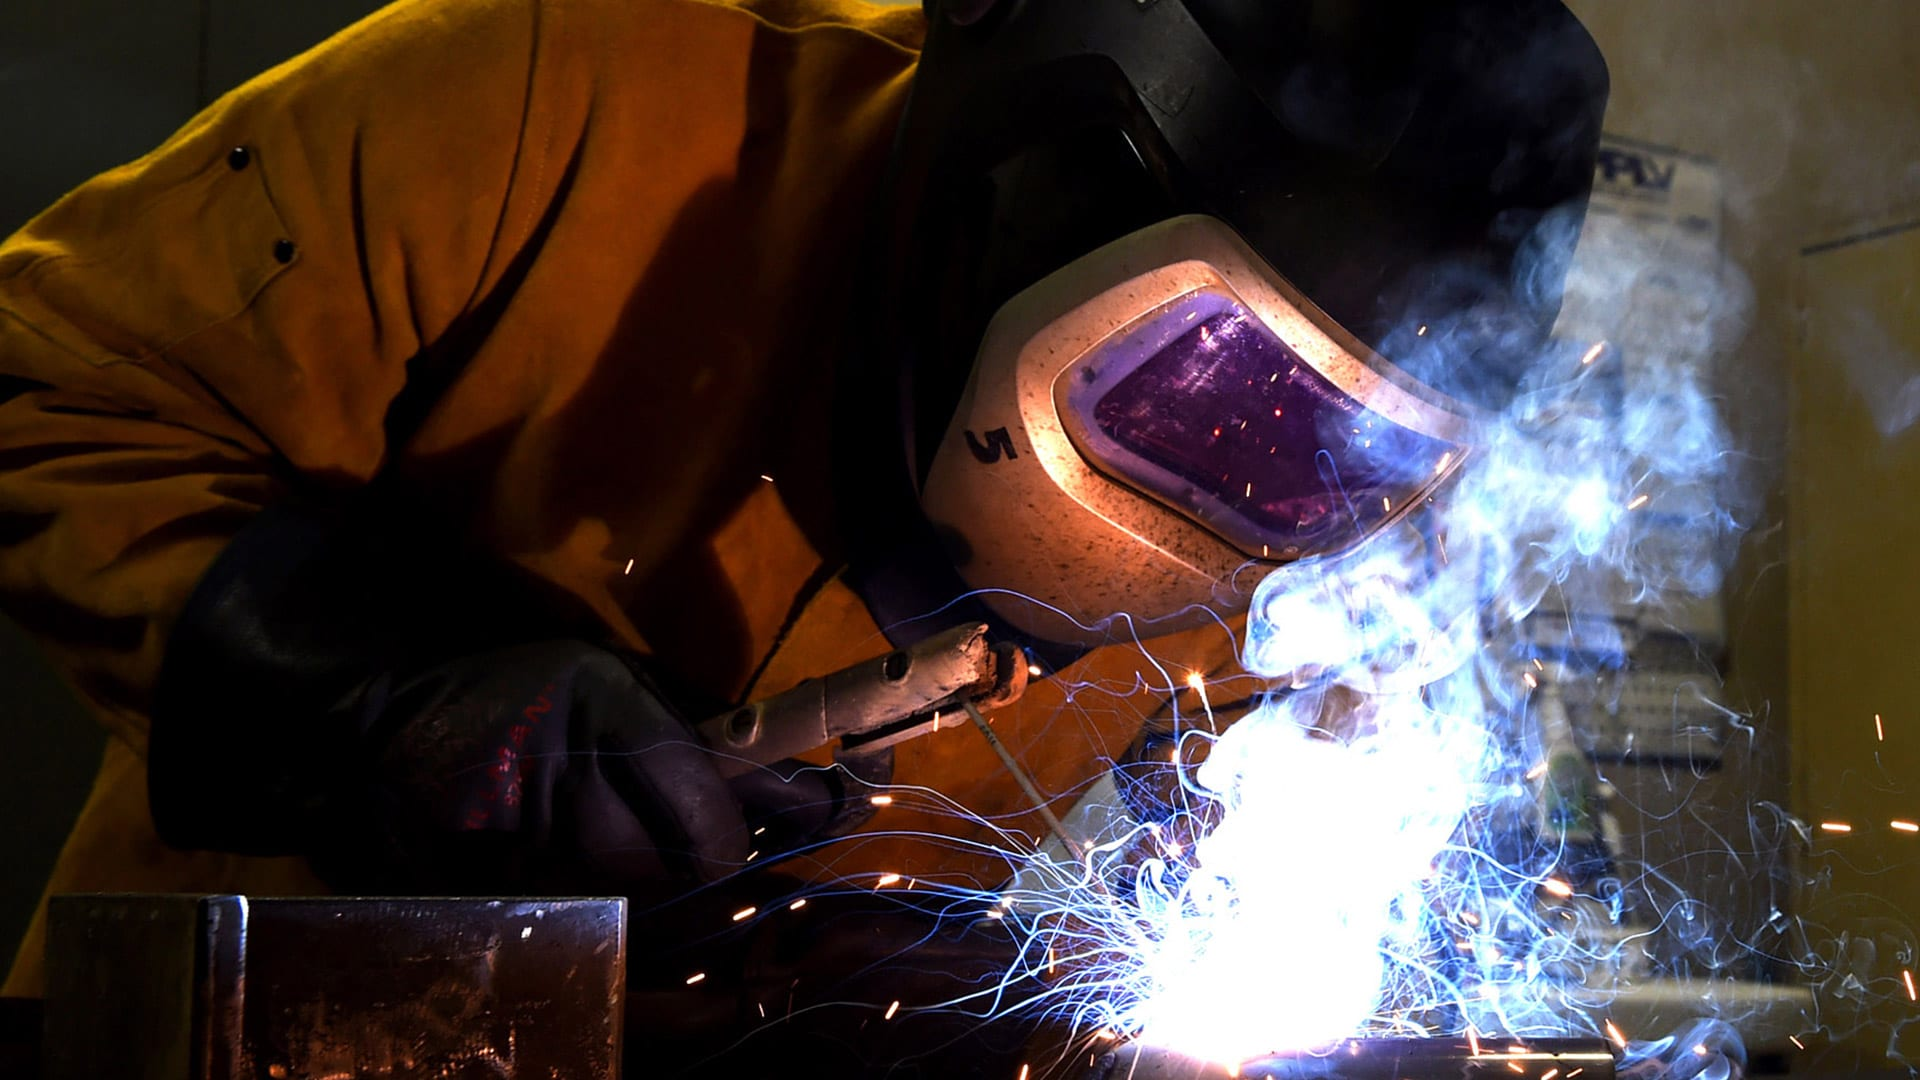 man welding a compressor